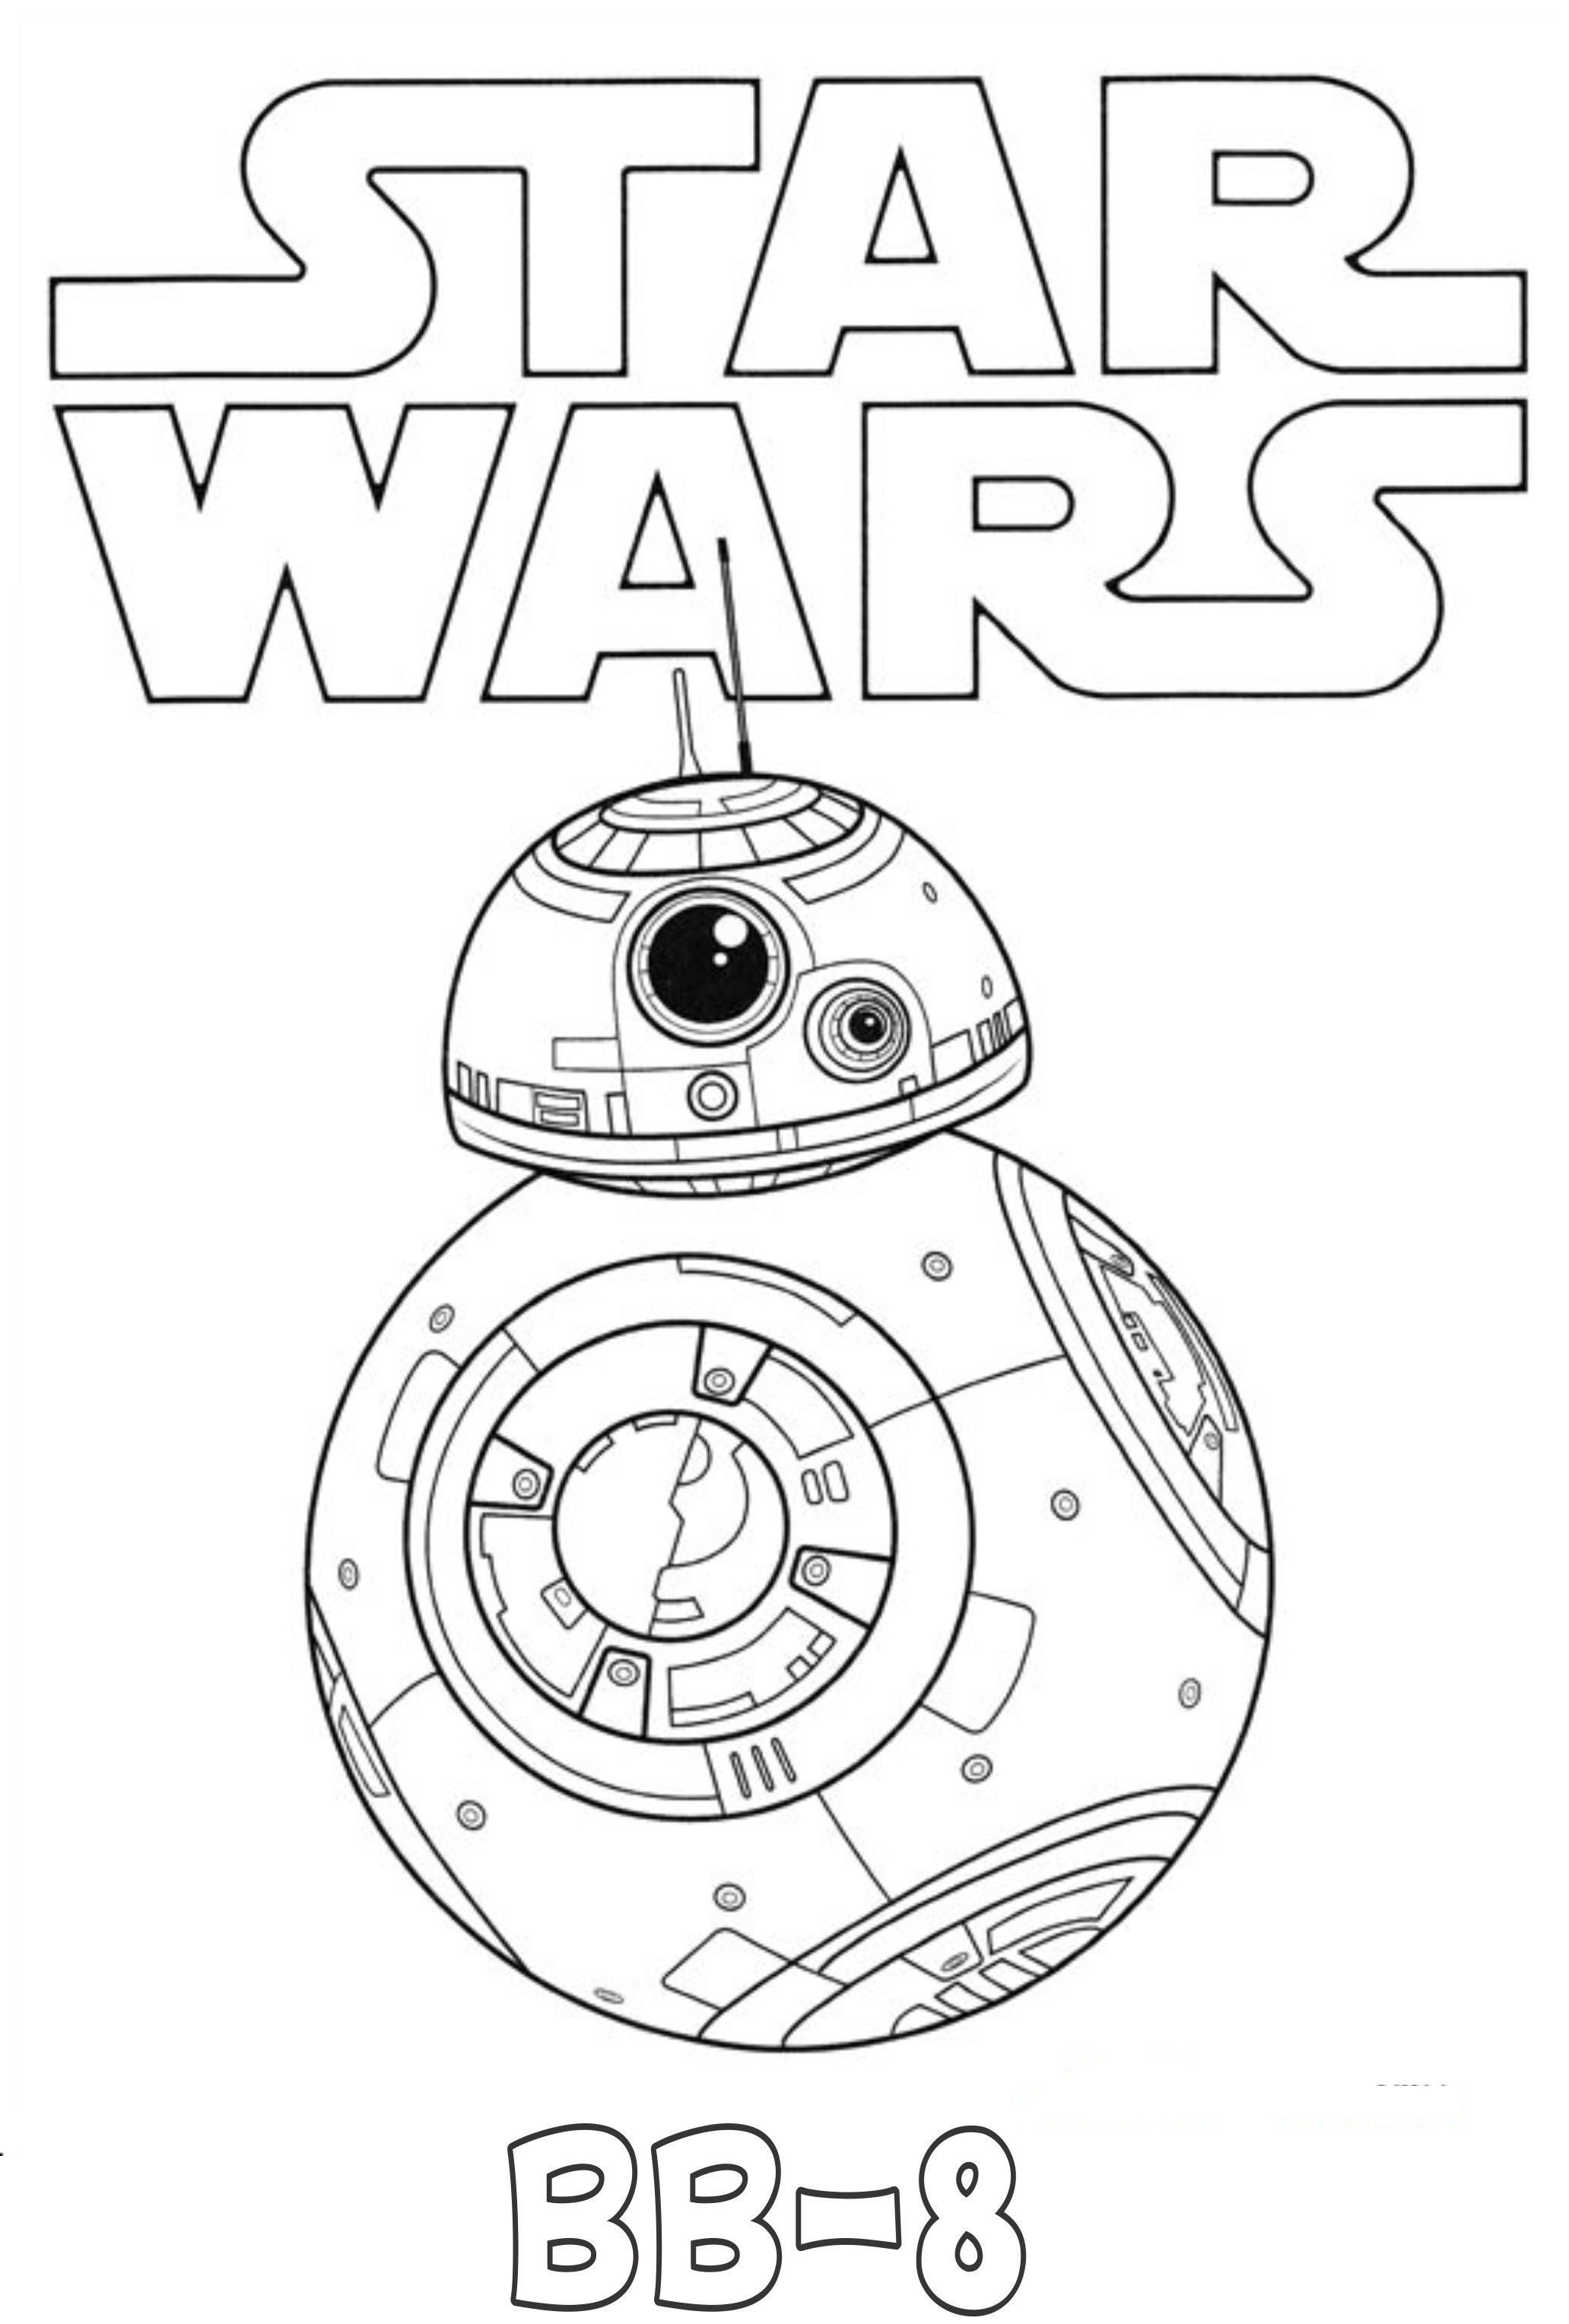 bb8 Coloring Page